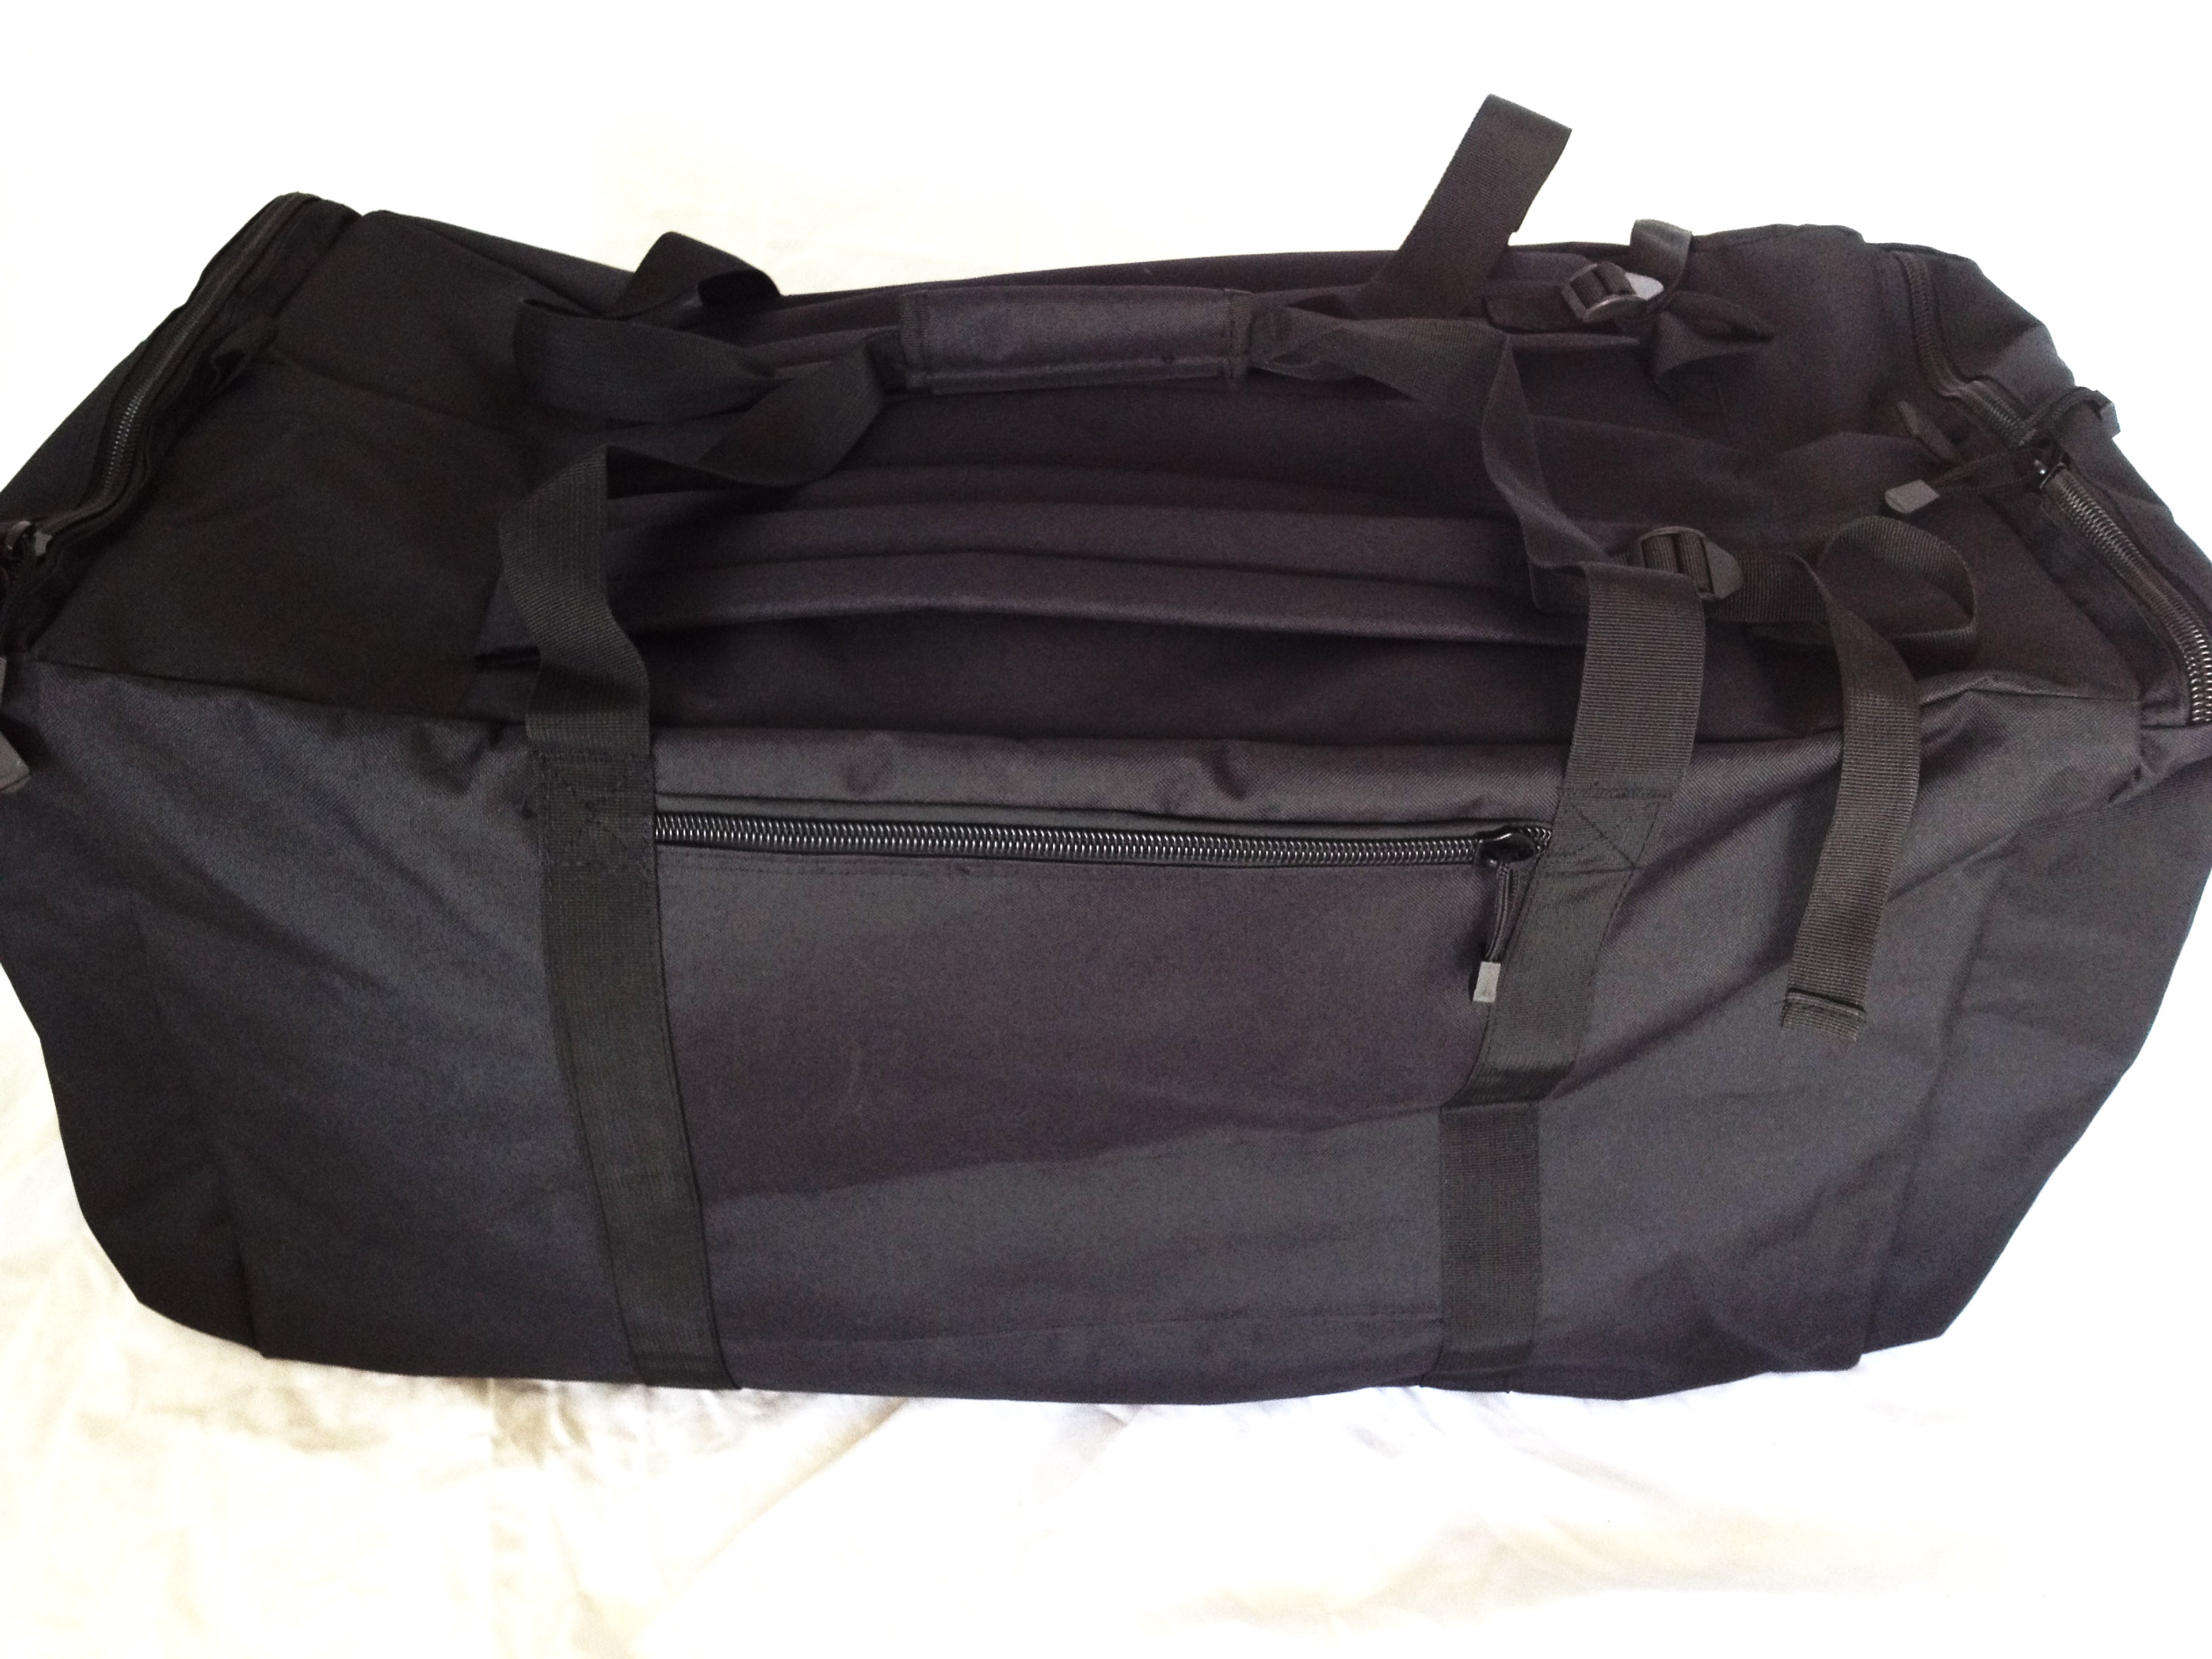 Military Army Tactical Cargo Style Duffle Bag Backpack - Hank s Surplus 91671df7de6